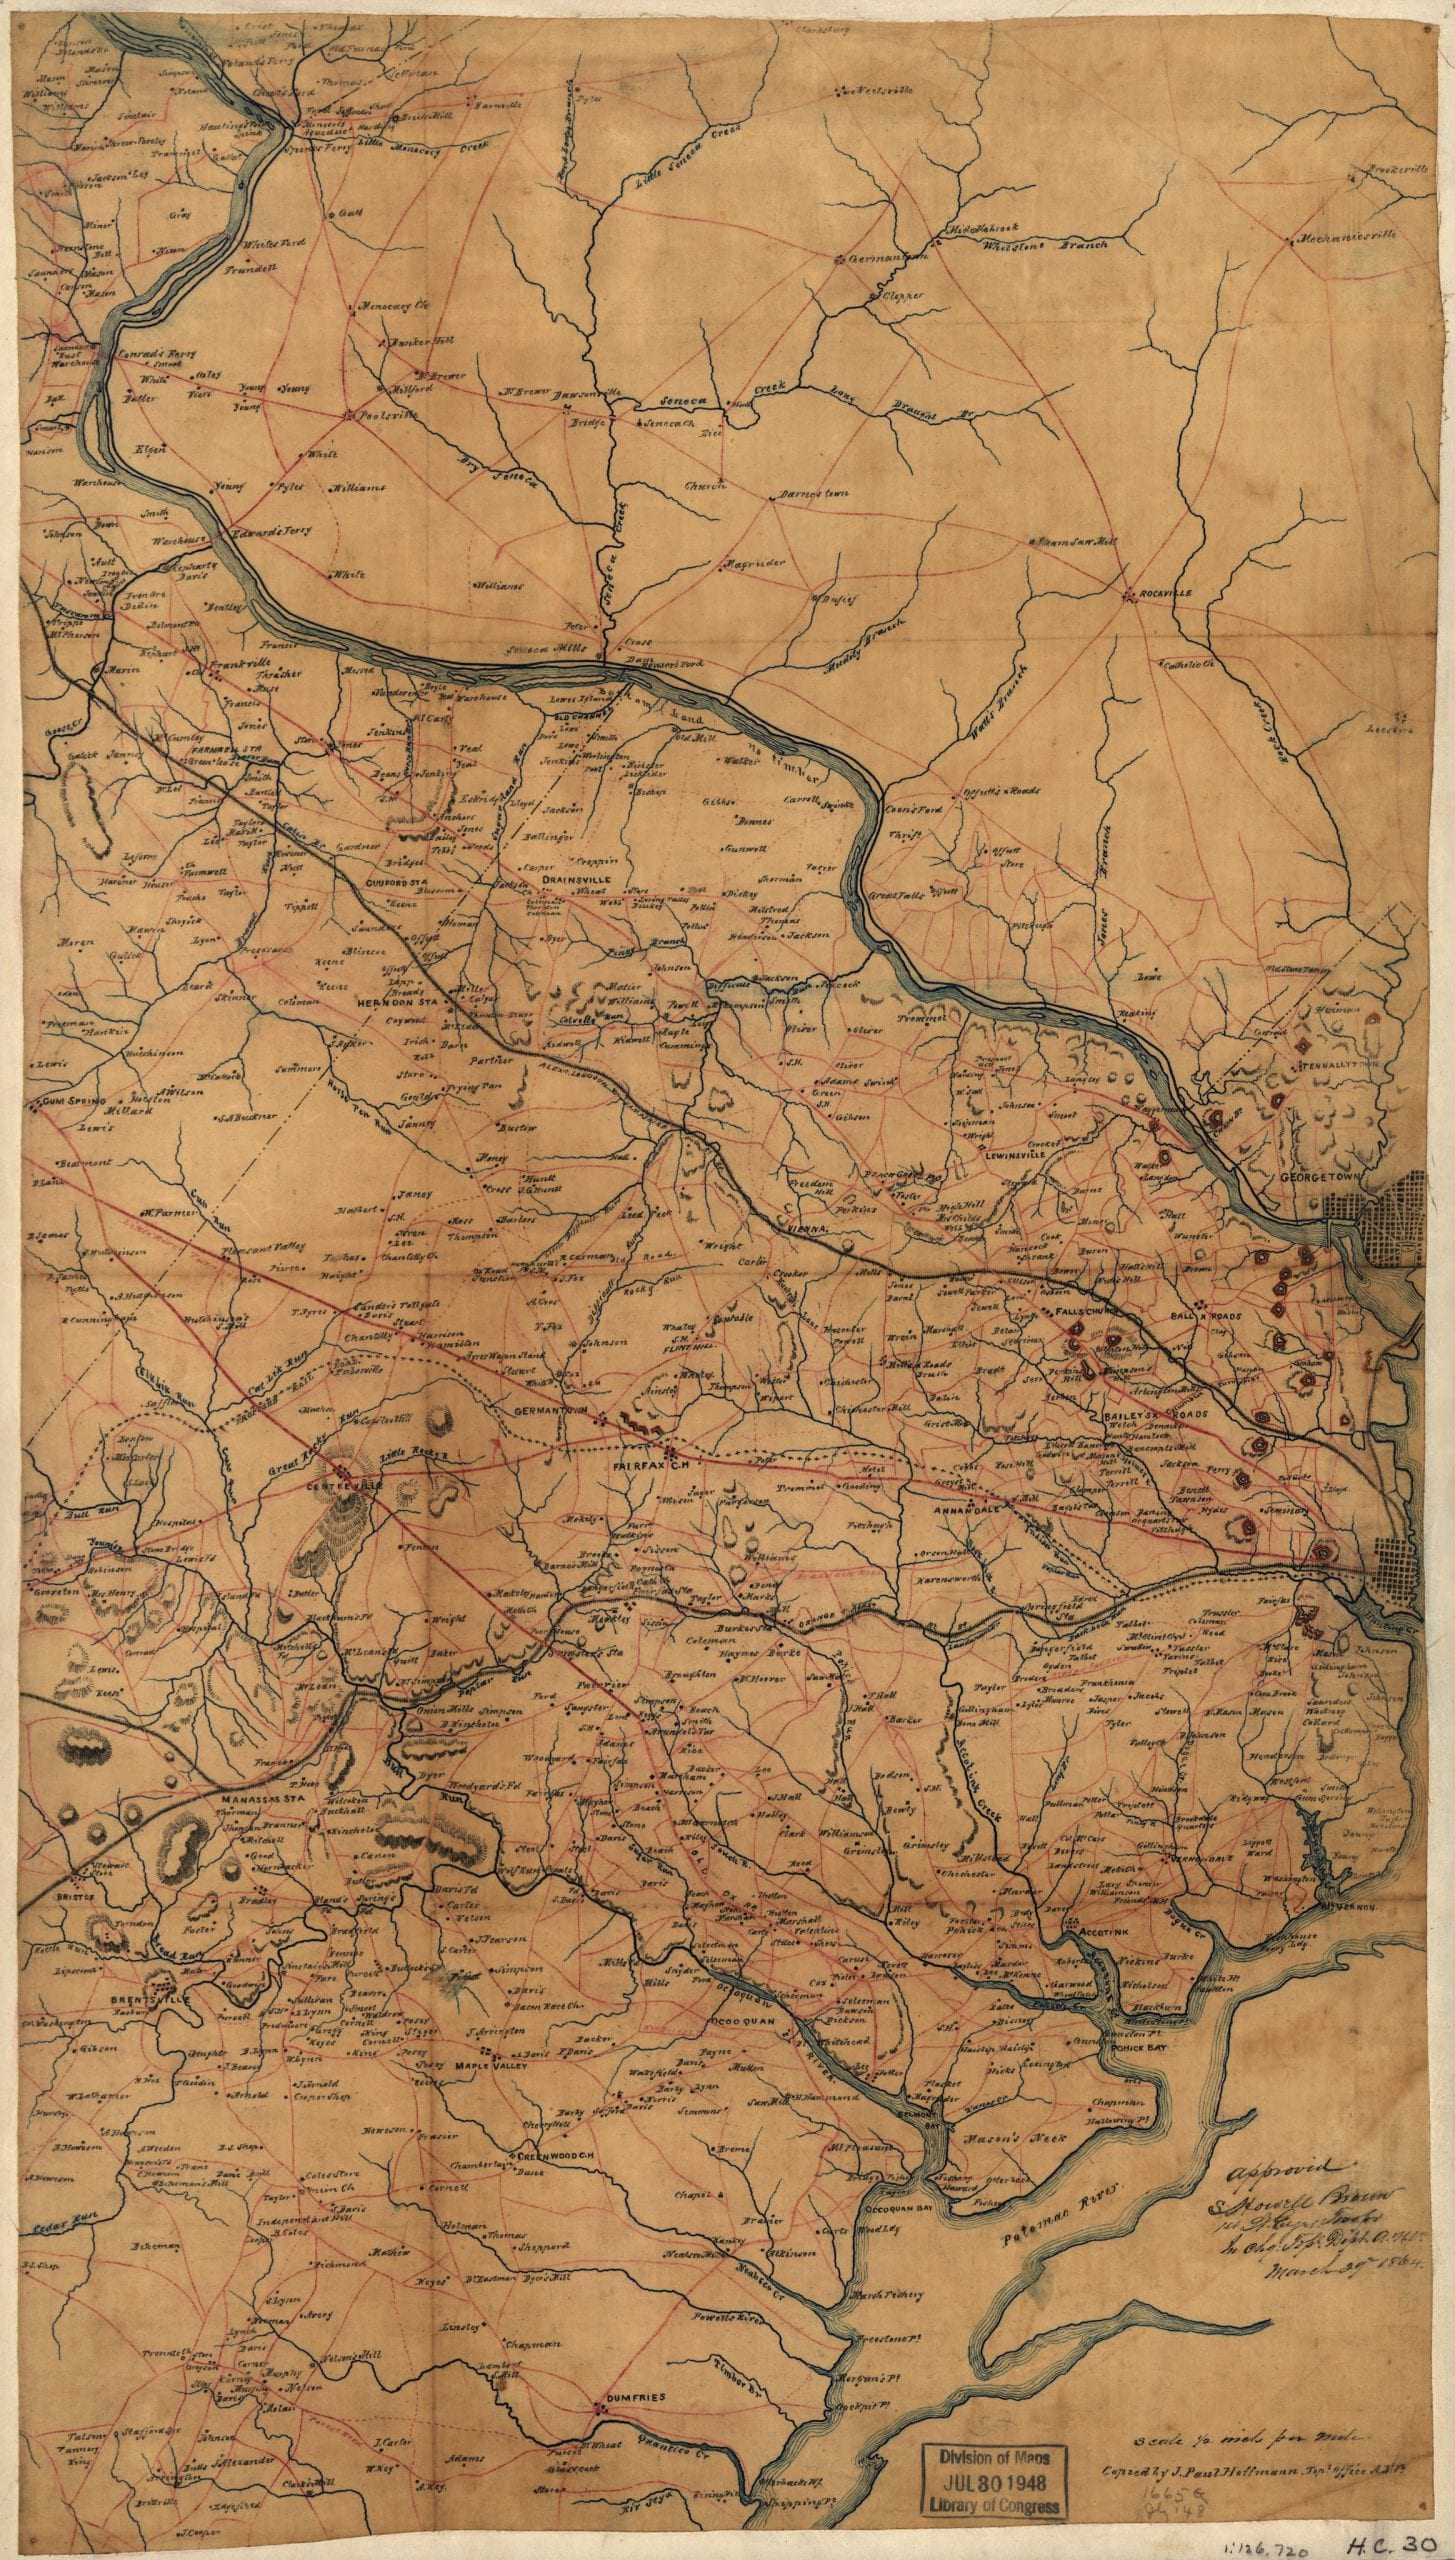 A map of Fairfax County, and parts of Loudoun and Prince William Counties, Va., and the District of Columbia] / copied by J. Paul Hoffmann, Top'l. Office, A.N.Va. ; approved S. Howell Brown, 1st Lt. Engs. Troops, in chg. Topl. Dept. A.N.V., March 29th 1864.